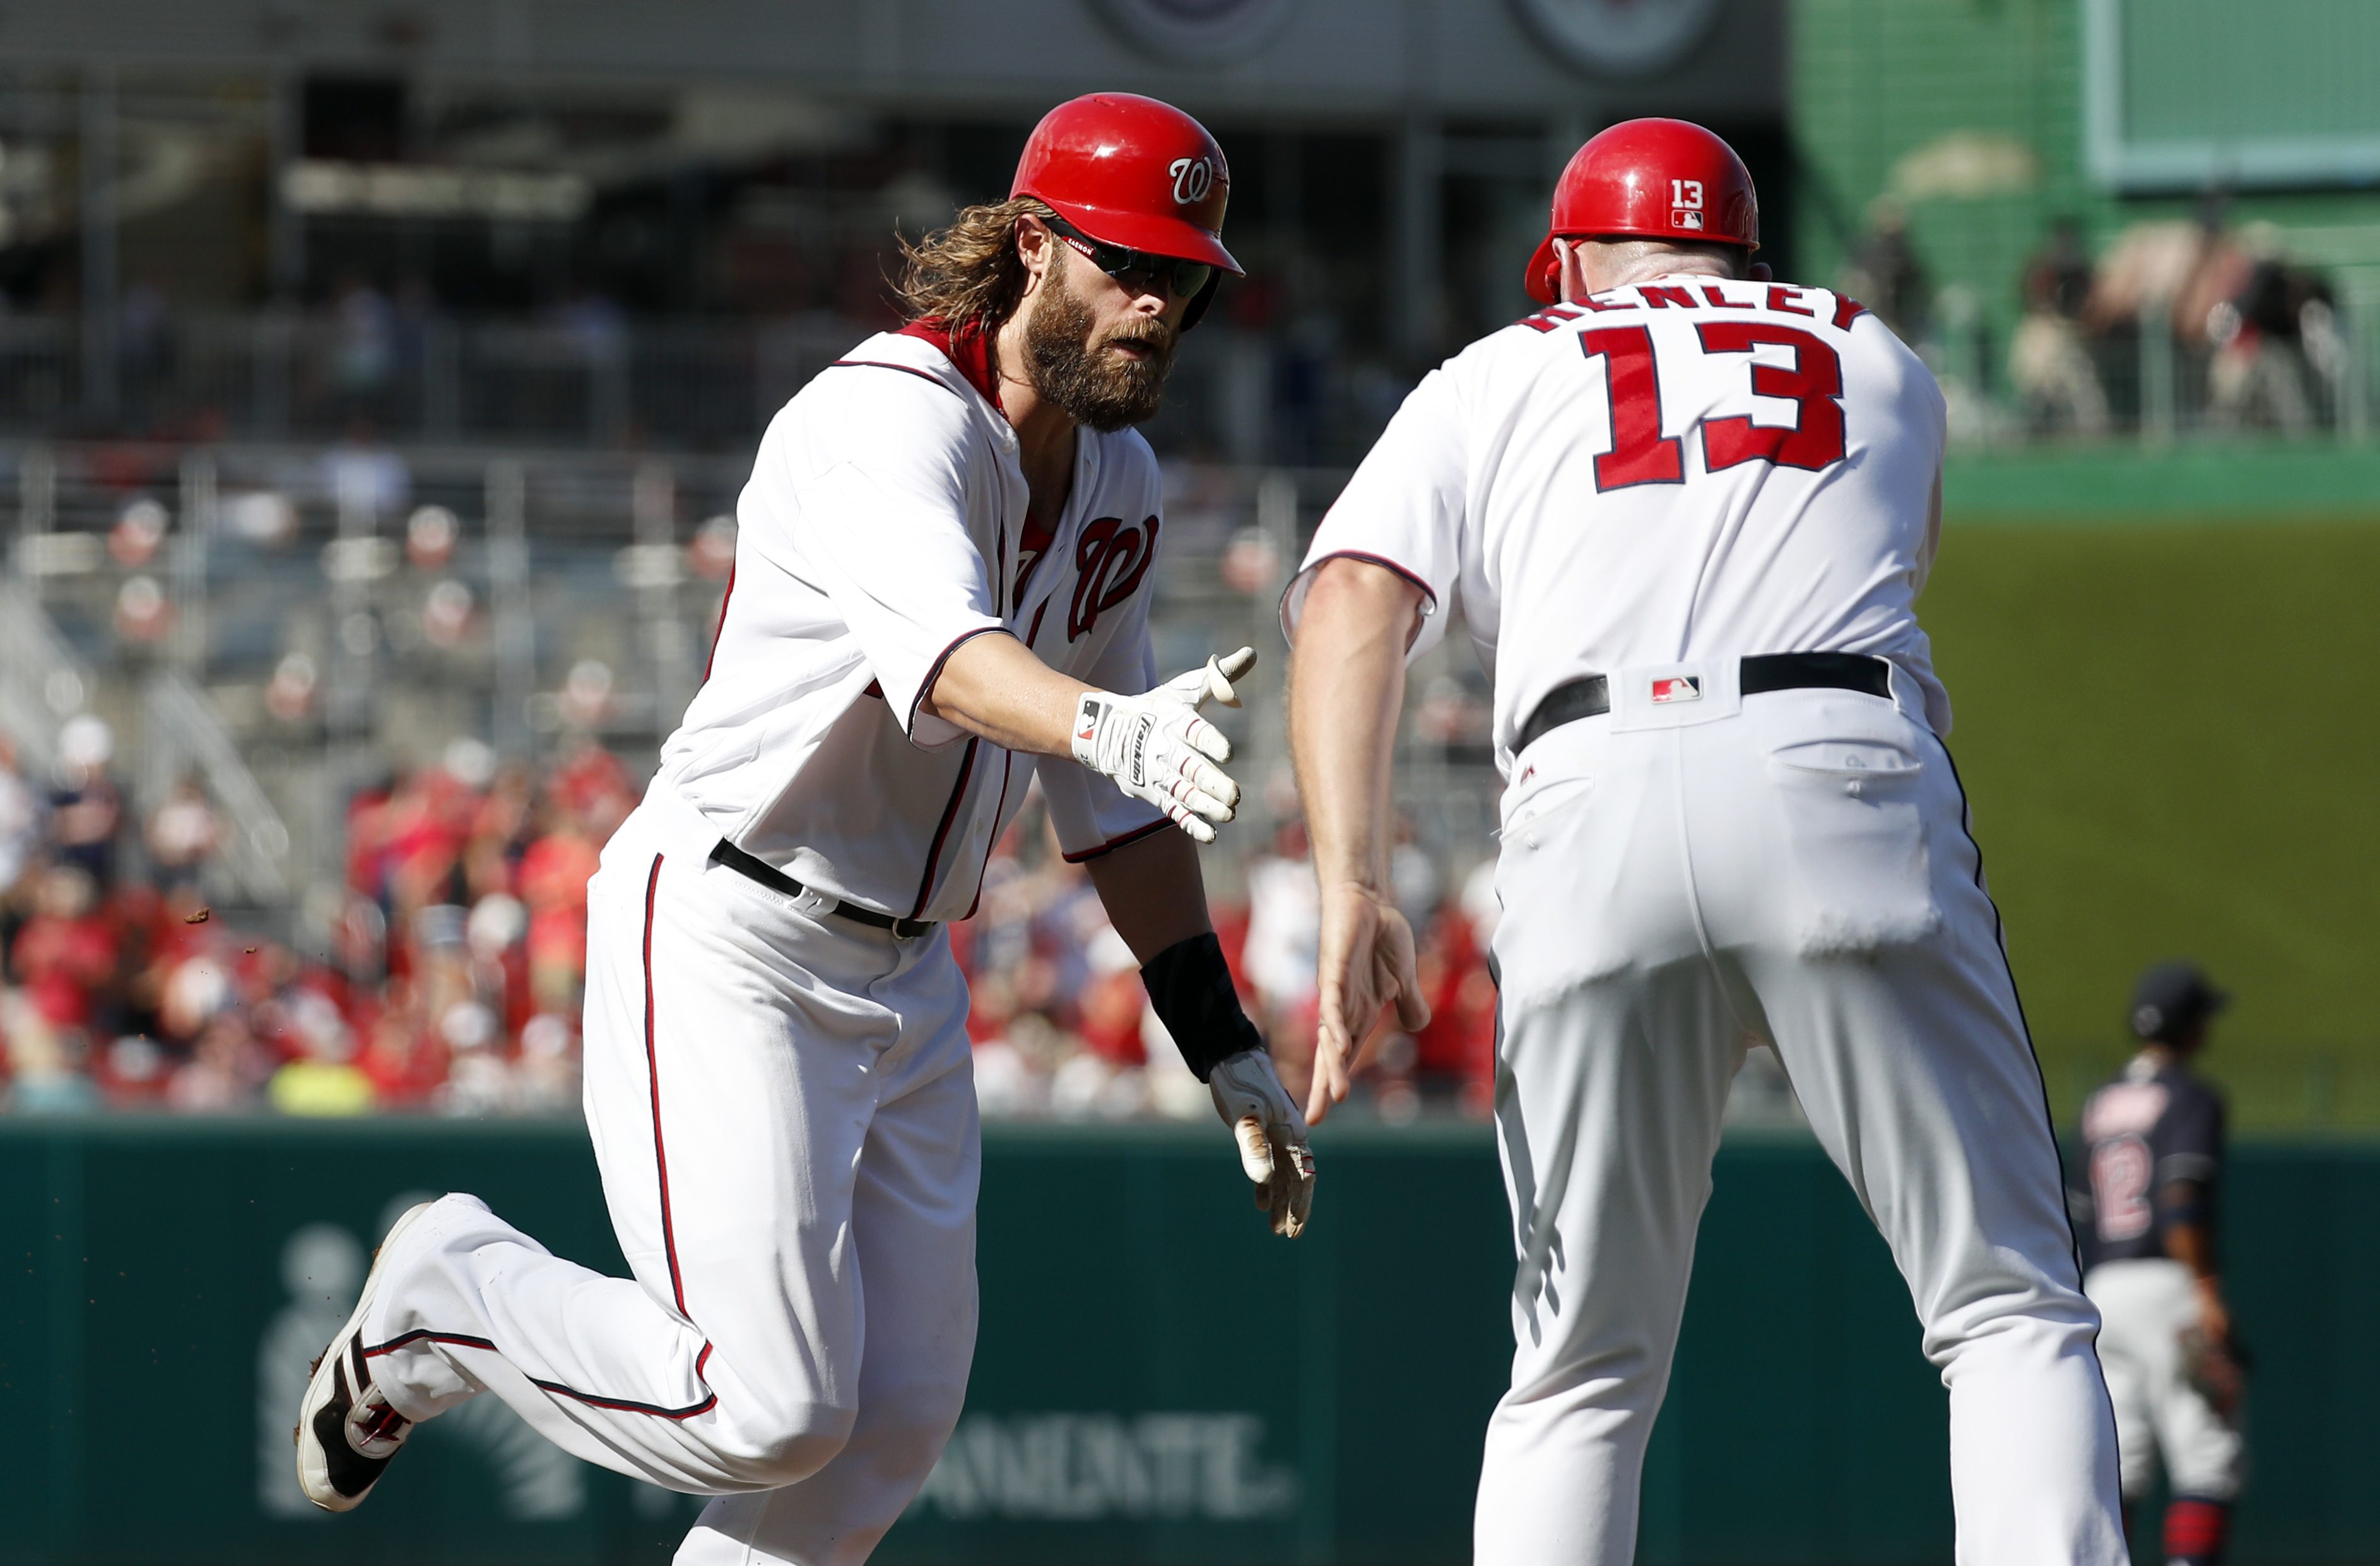 Washington Nationals' Jayson Werth, left, is congratulated by third base coach Bob Henley (13) as he rounds the bases for his three-run homer during the second inning of a baseball game against the Cleveland Indians at Nationals Park, Wednesday, Aug. 10,